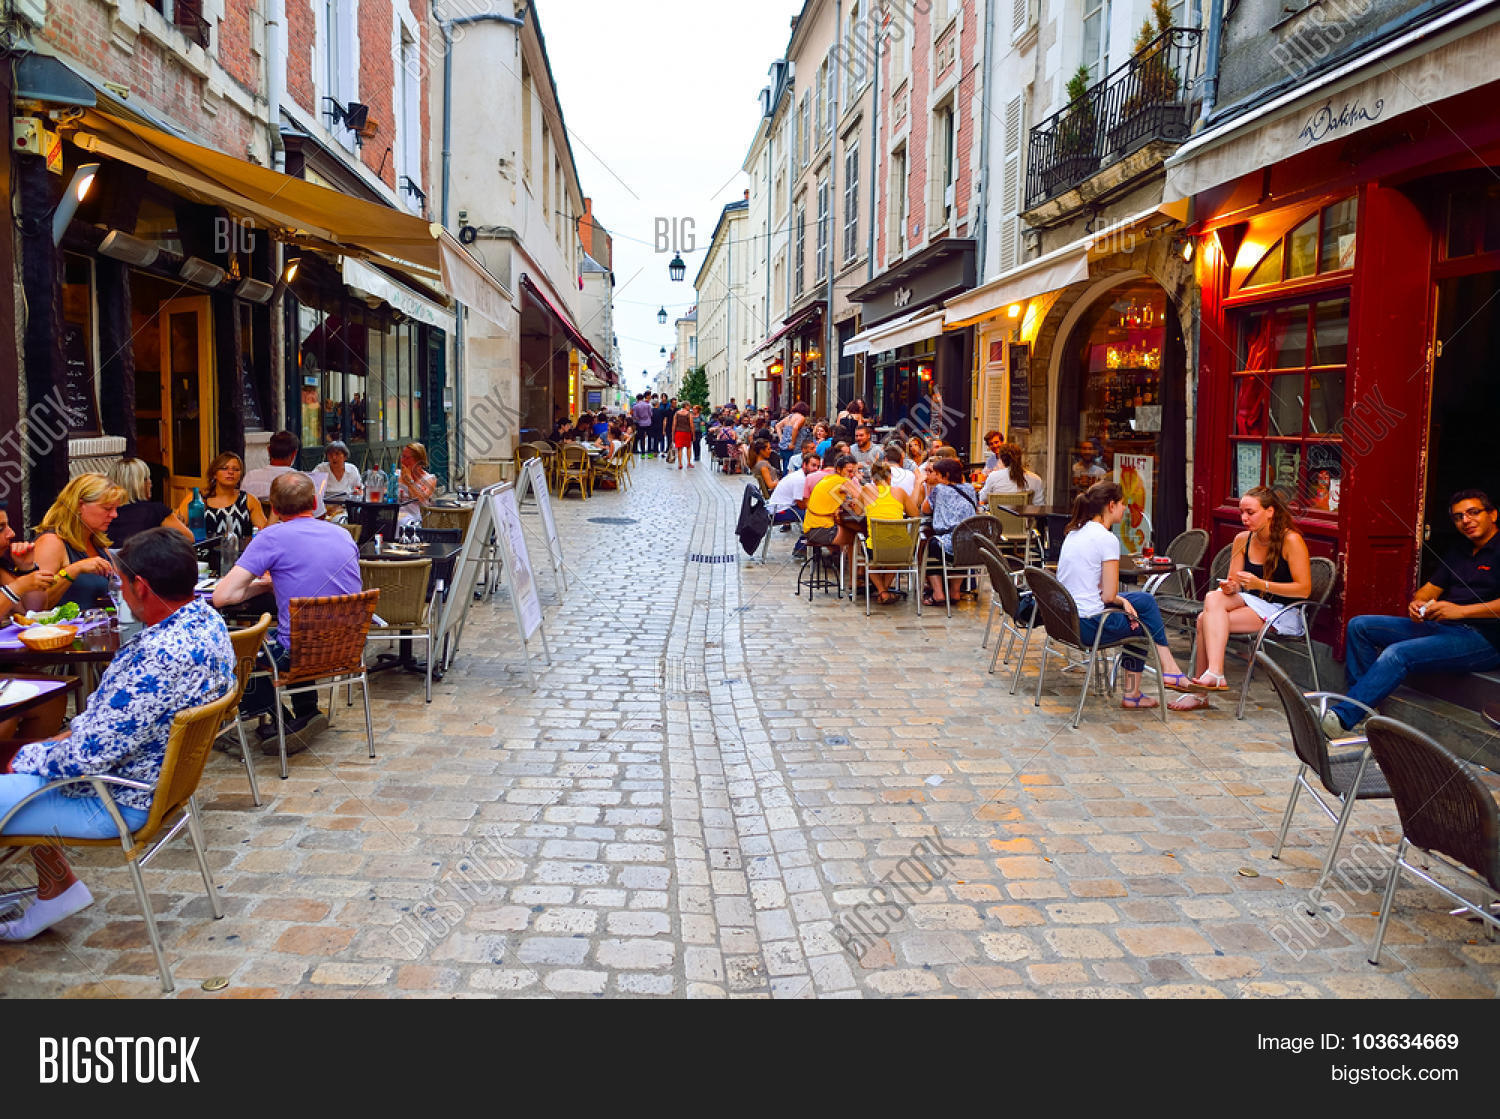 Orleans france image photo free trial bigstock for Loiret orleans